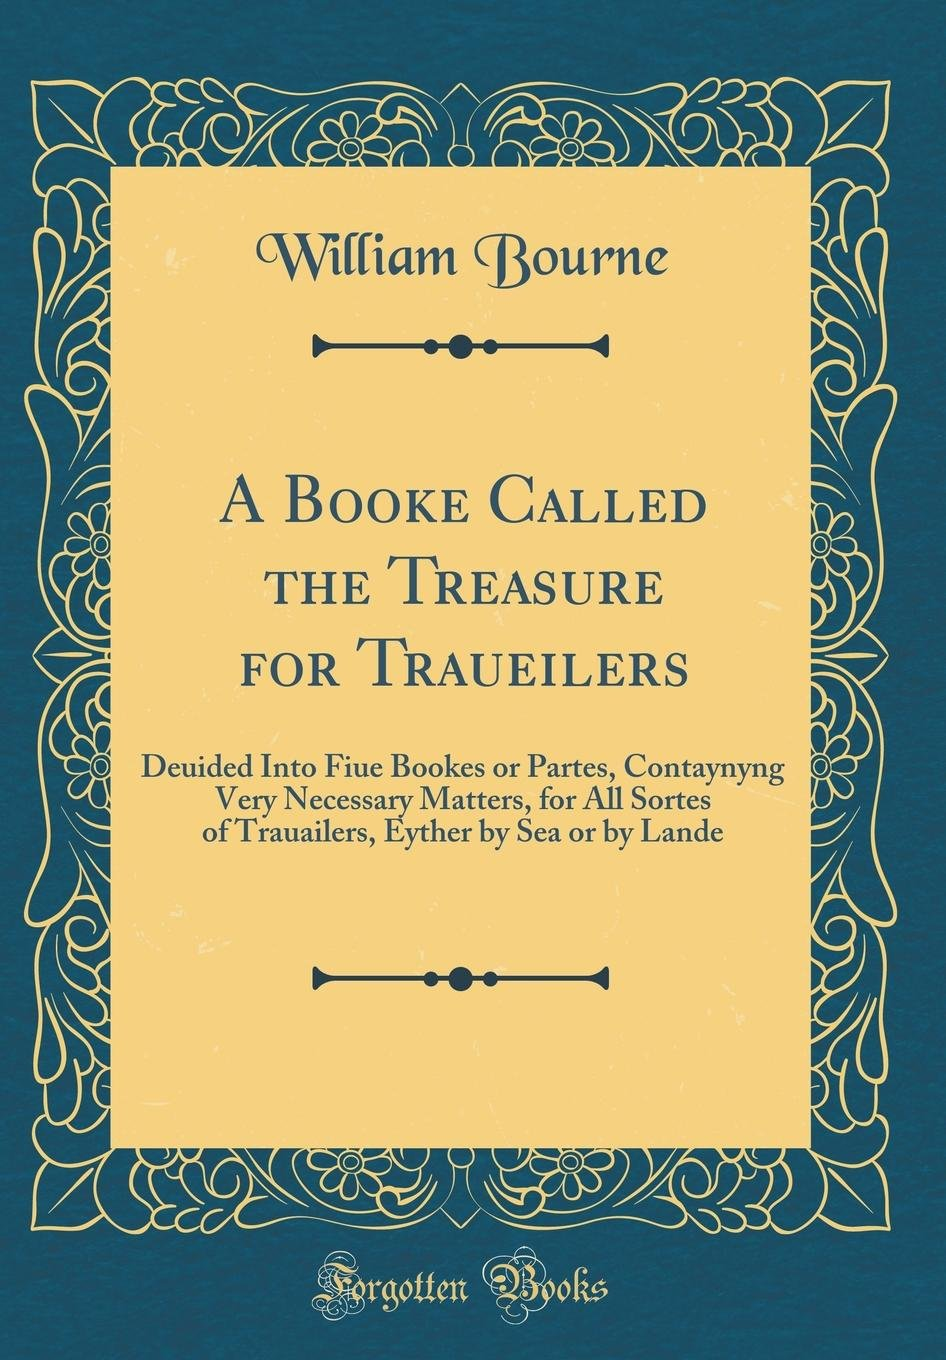 A Booke Called the Treasure for Traueilers: Deuided Into Fiue Bookes or Partes, Contaynyng Very Necessary Matters, for All Sortes of Trauailers, Eyther by Sea or by Lande (Classic Reprint) PDF